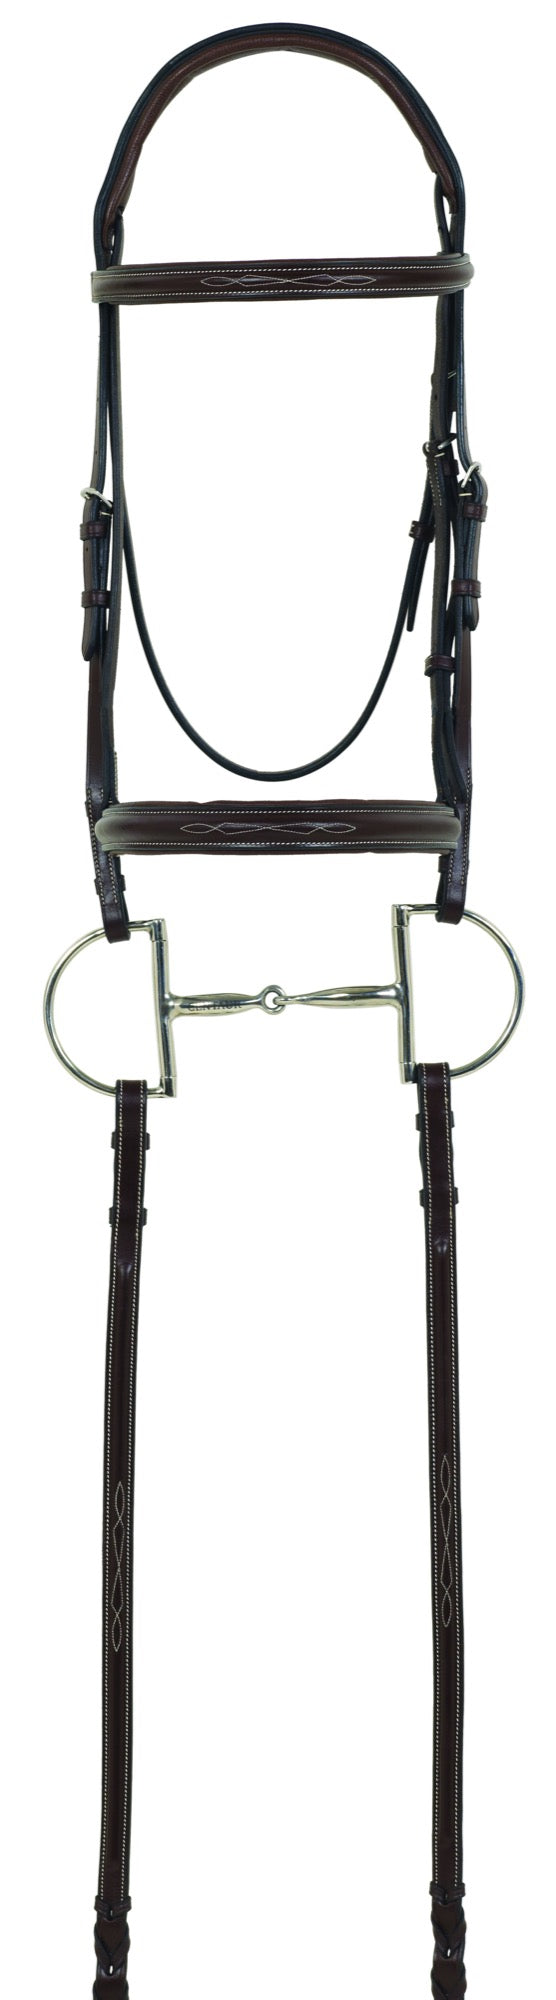 Brown leather english bridle with a D-ring snaffle bit. The bridle has some fancy stitching on the noseband and  broadband.